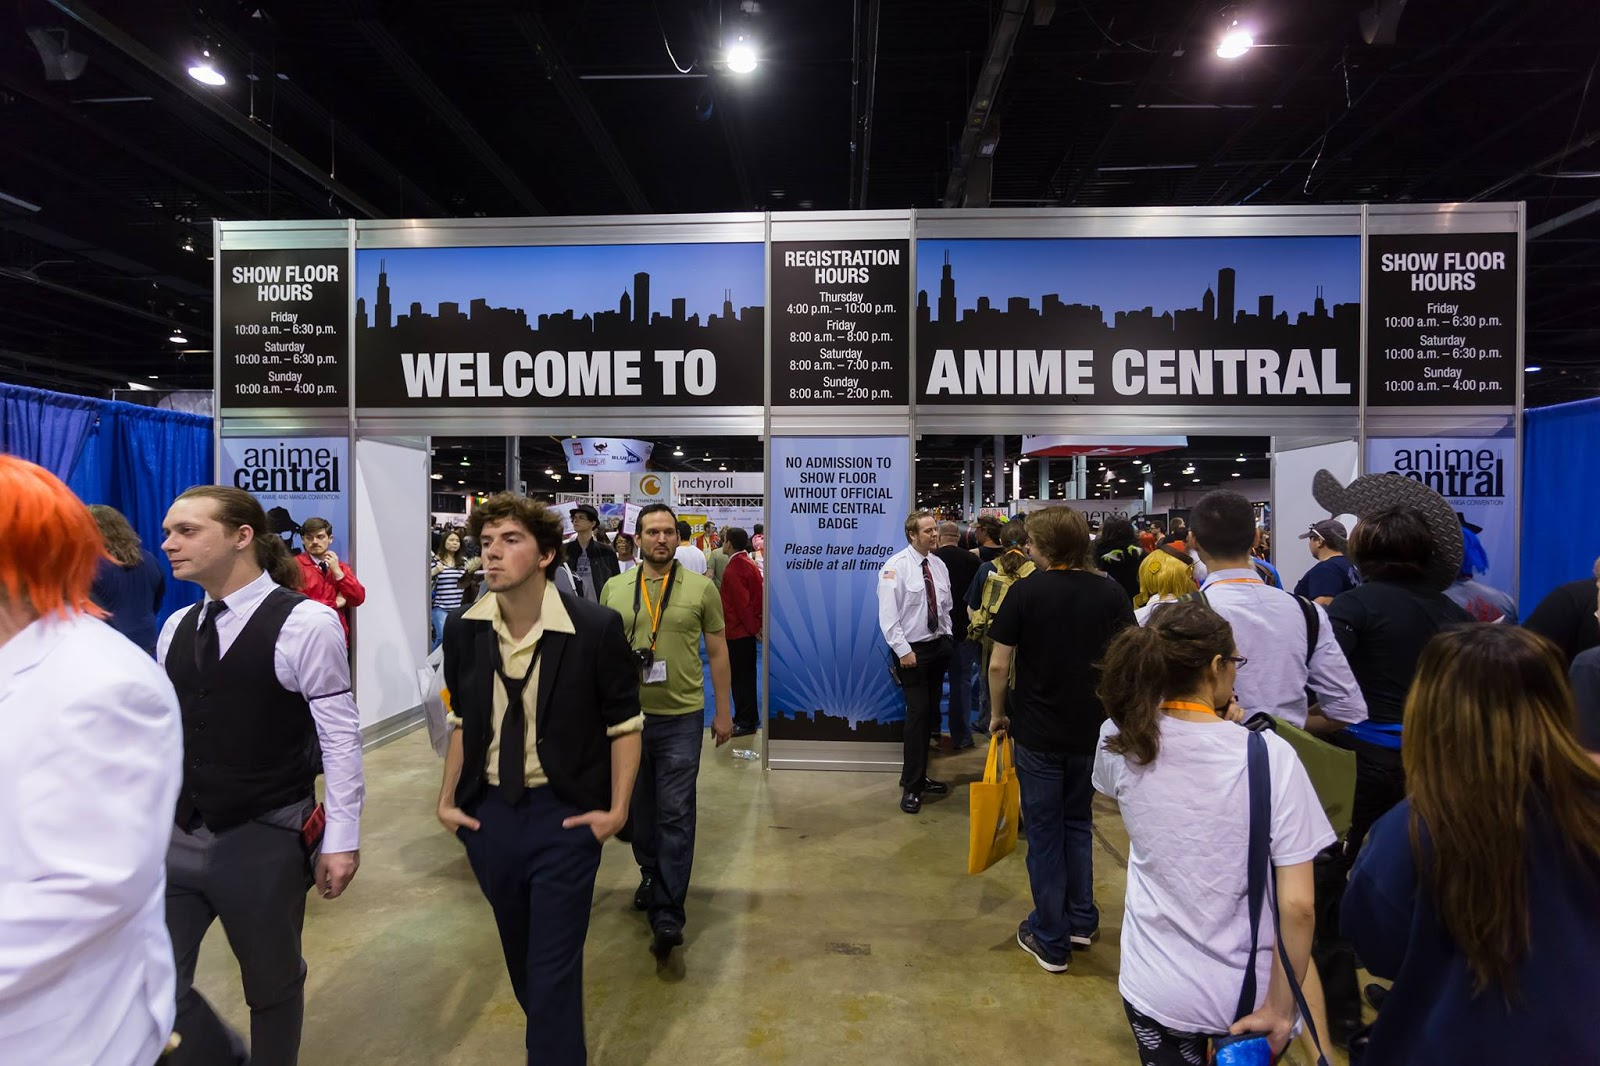 Anime central 2017 rosemont il usa may 19 21 2017